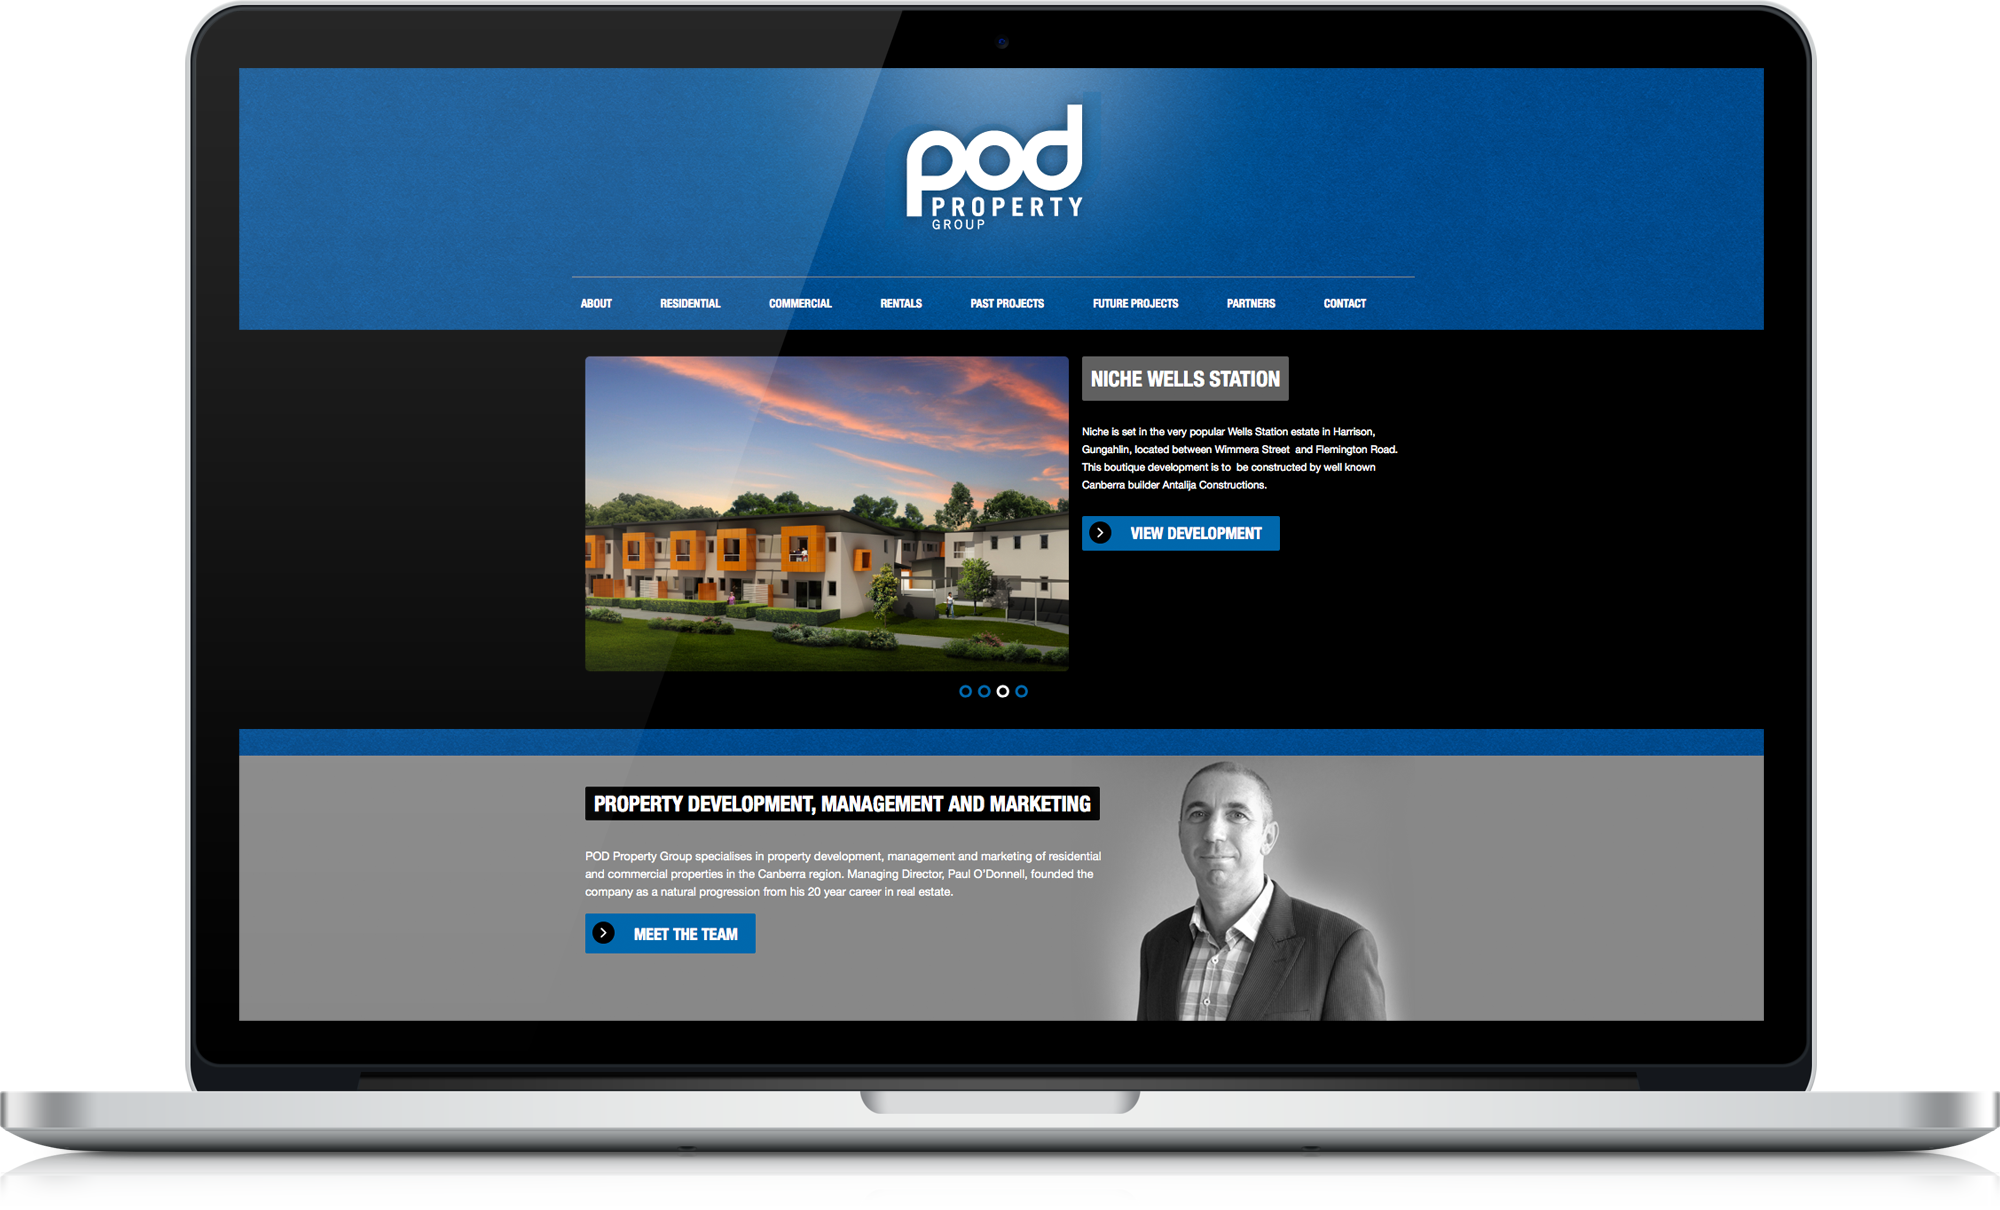 POD Property Group